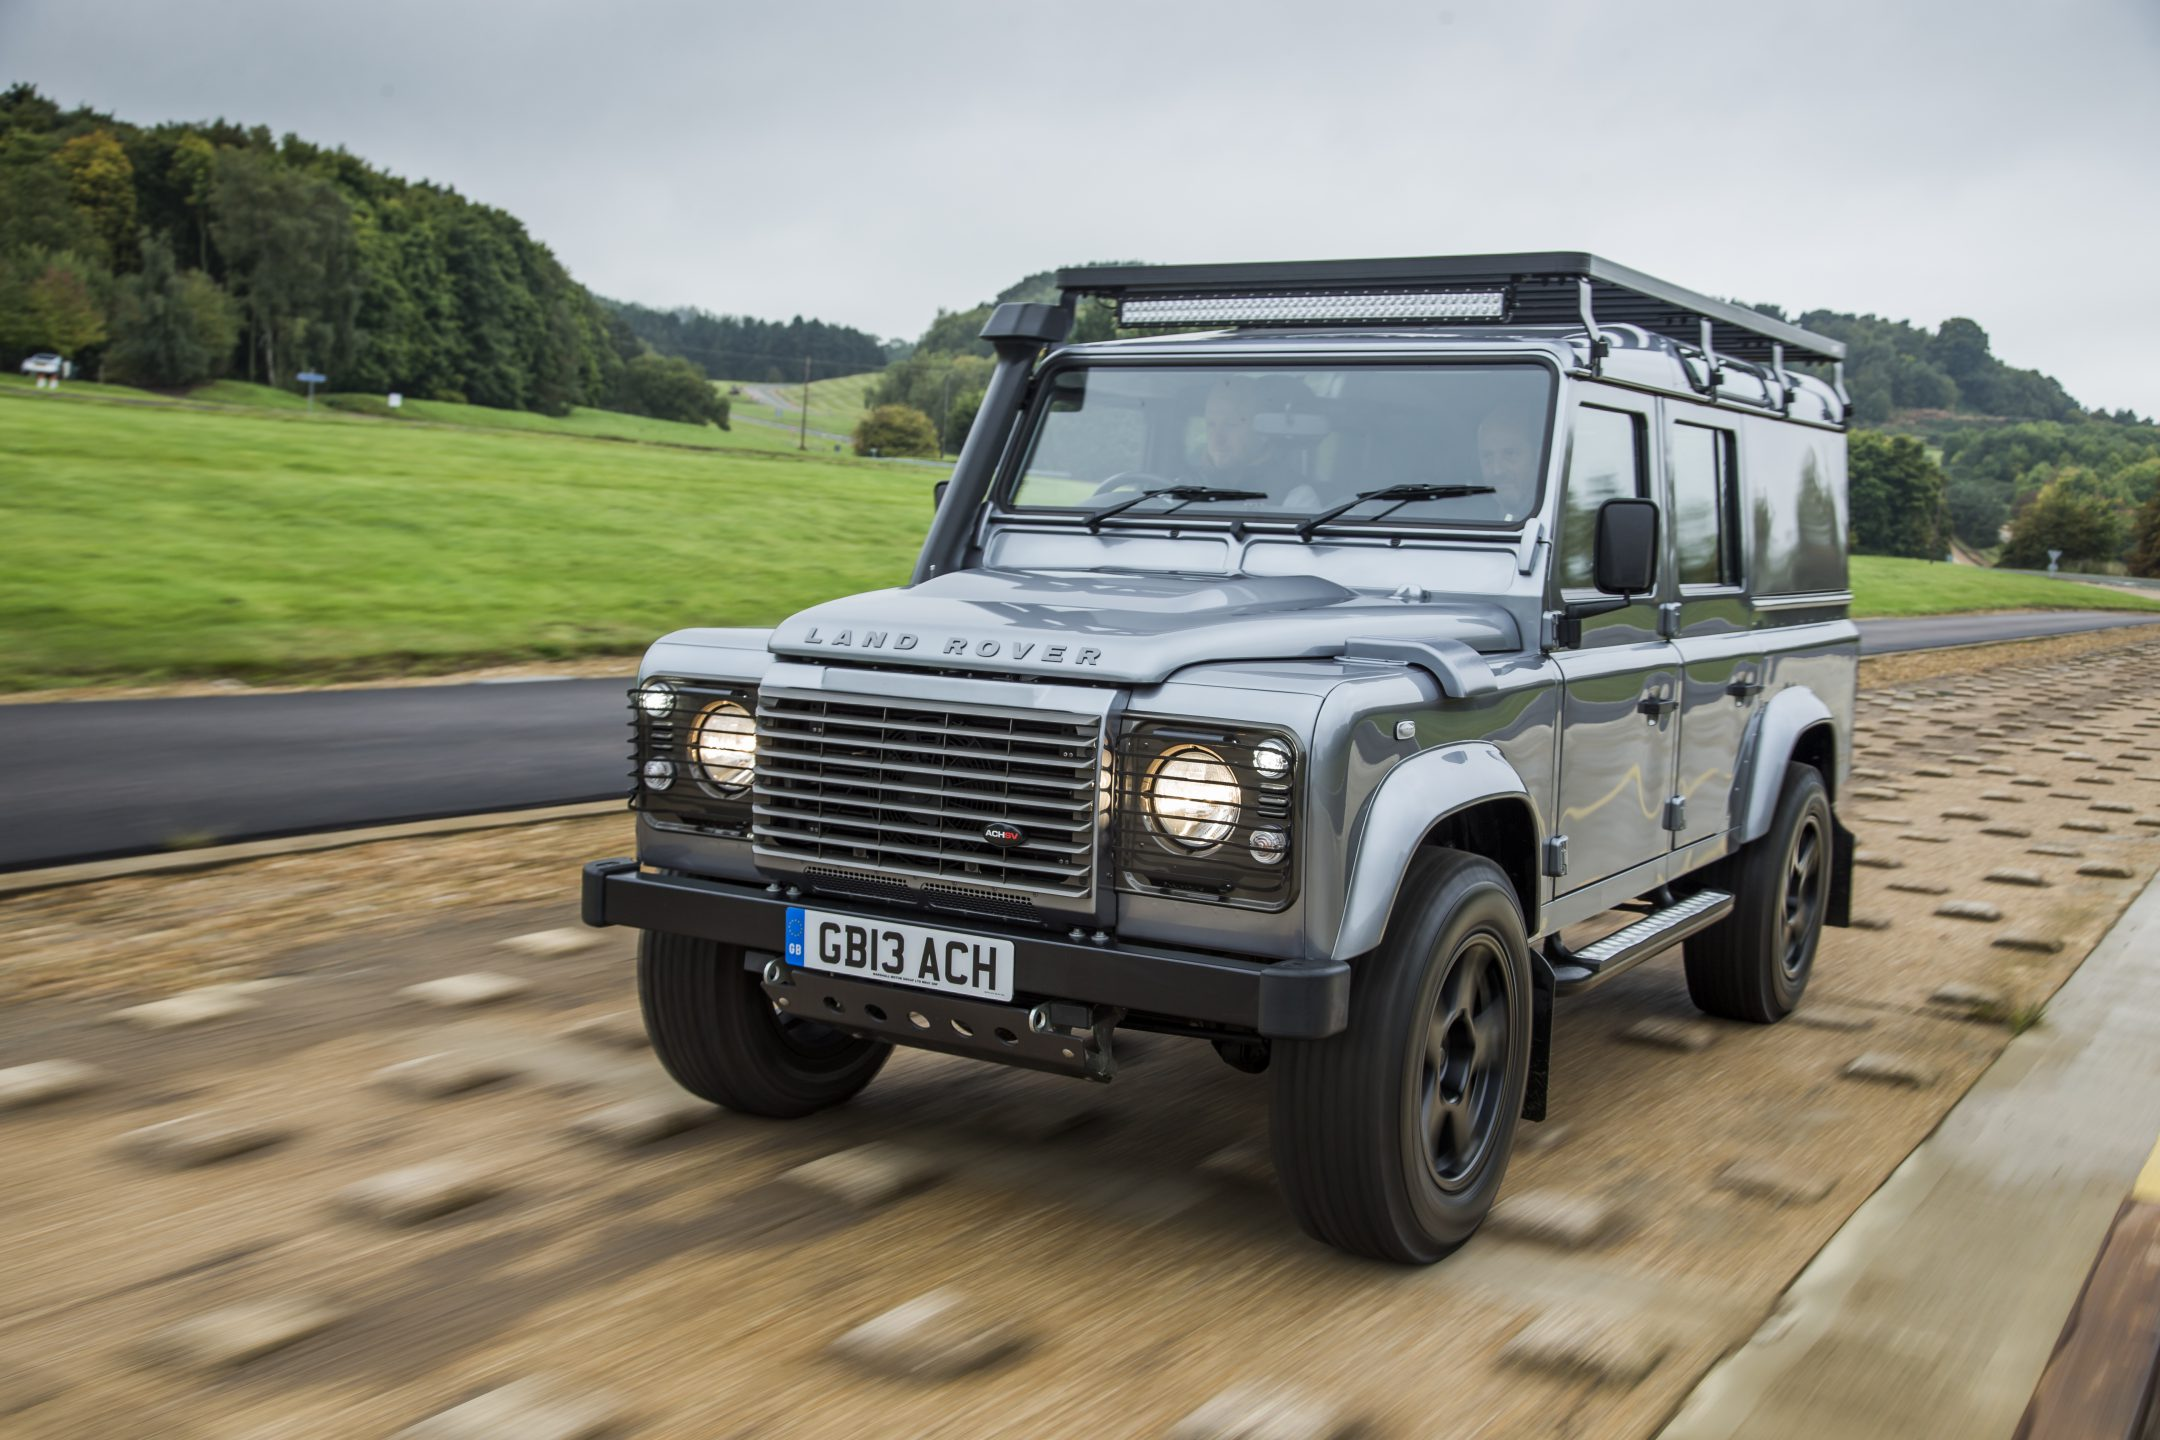 Defender 110 XS Utility for sale